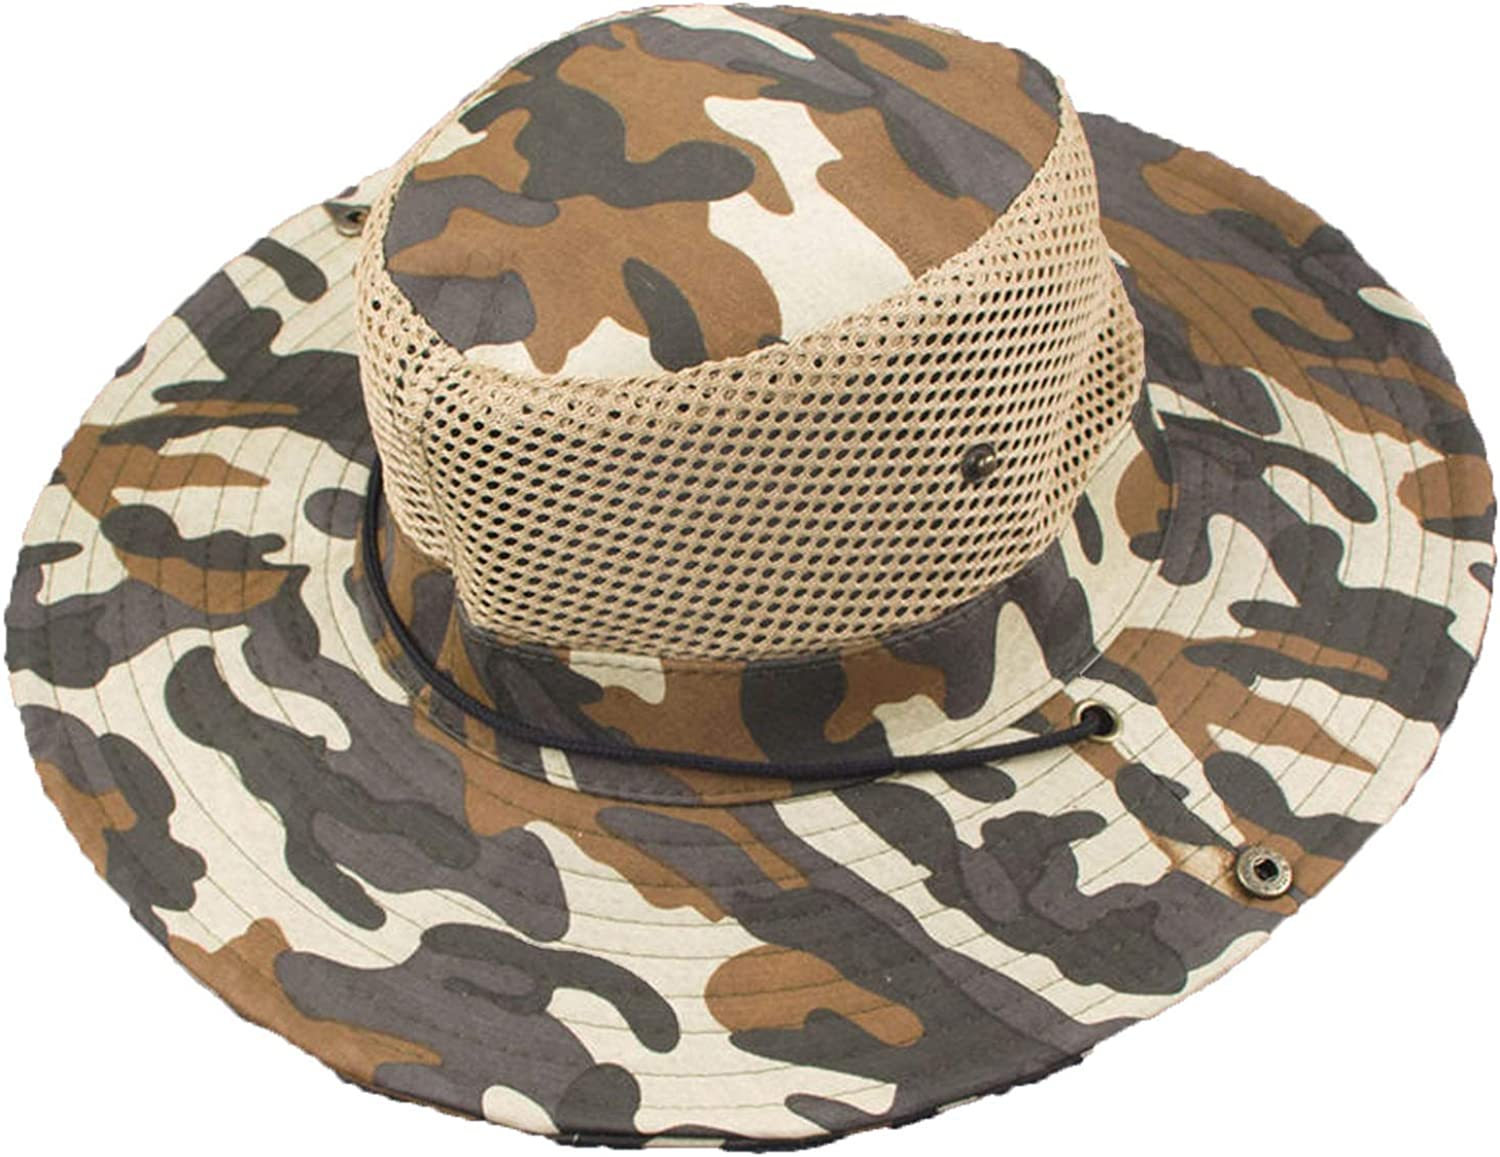 CHENTAI Military Camouflage Bucket Hat Fisherman Hats Beach Hat Outdoor Army Mens American Military Accessories